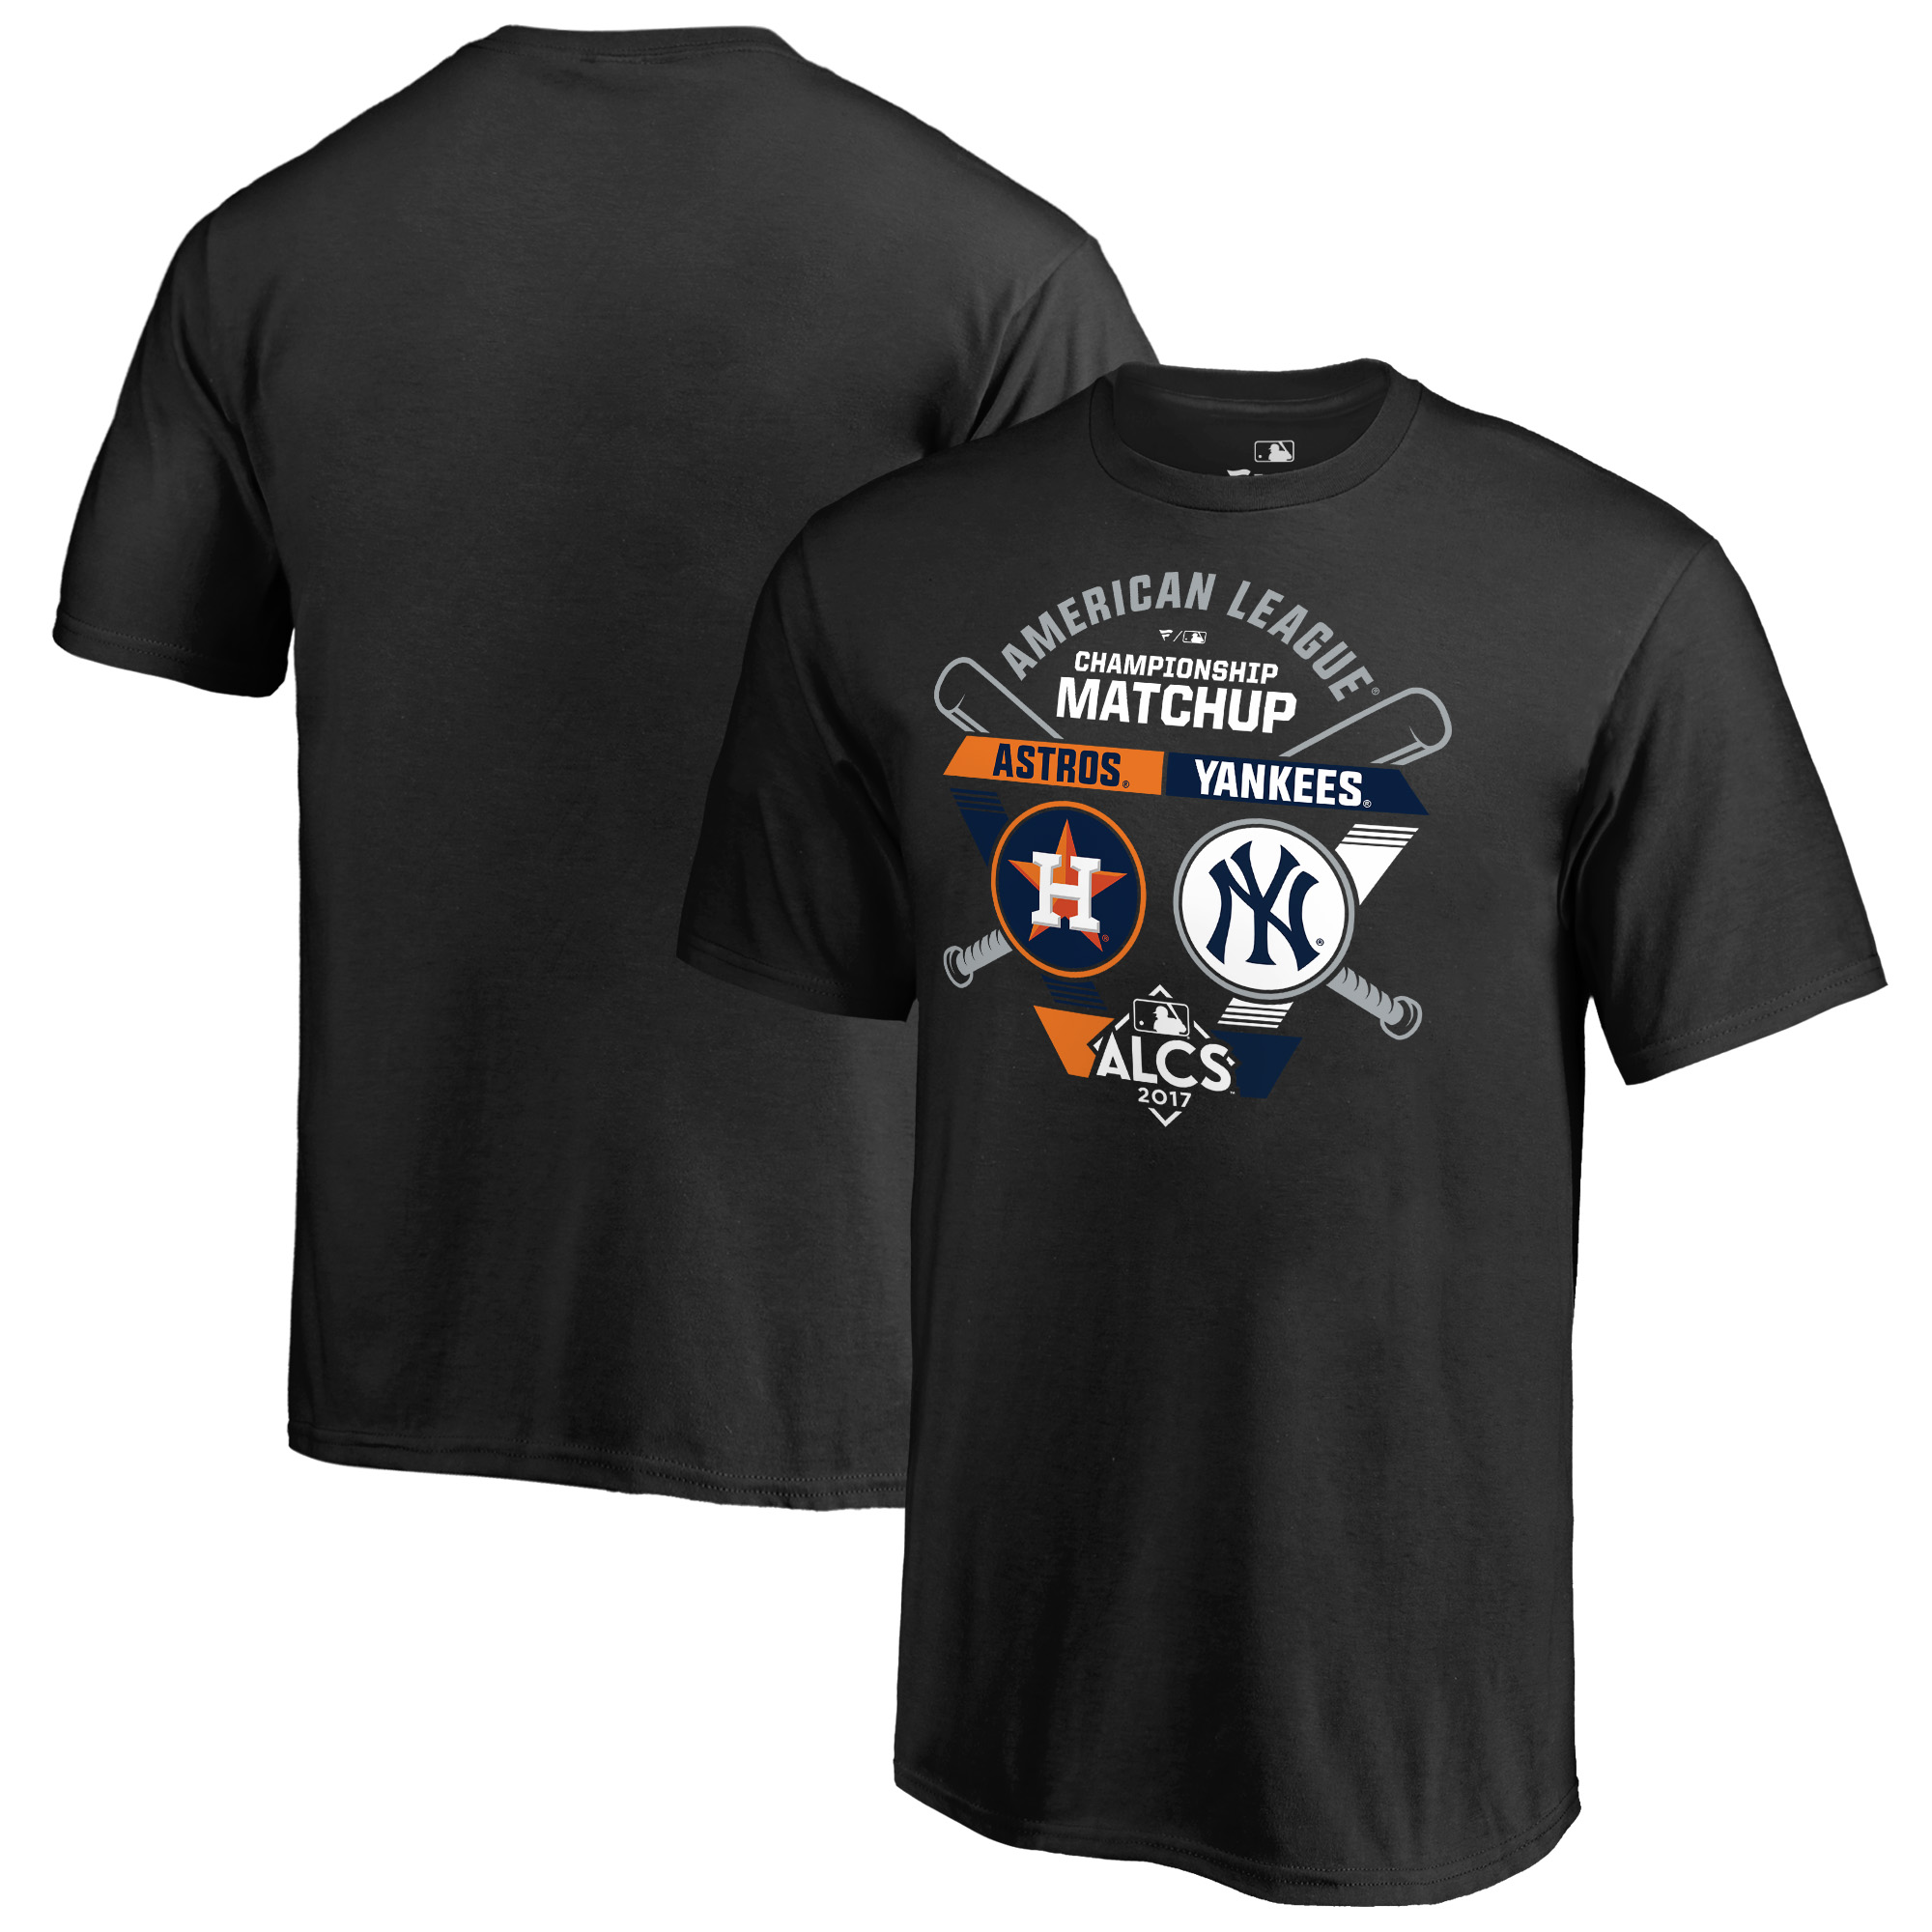 Houston Astros vs. New York Yankees Fanatics Branded Youth 2017 American League Championship Series Matchup Bases Loaded T-Shirt - Black